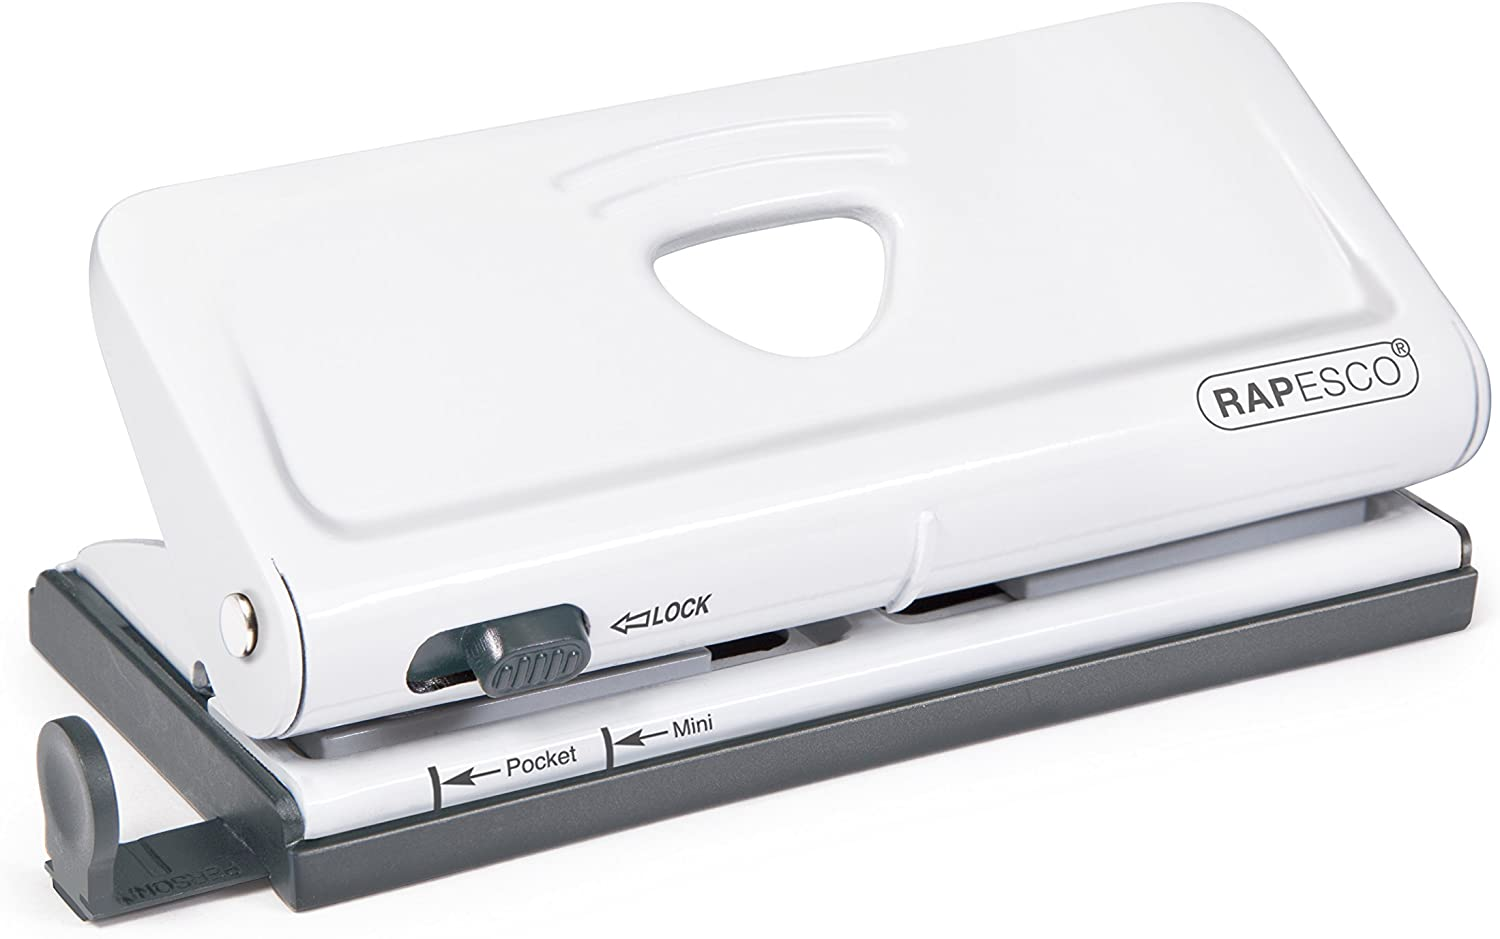 Rapesco Adjustable, 6 Hole Paper Punches (1321)